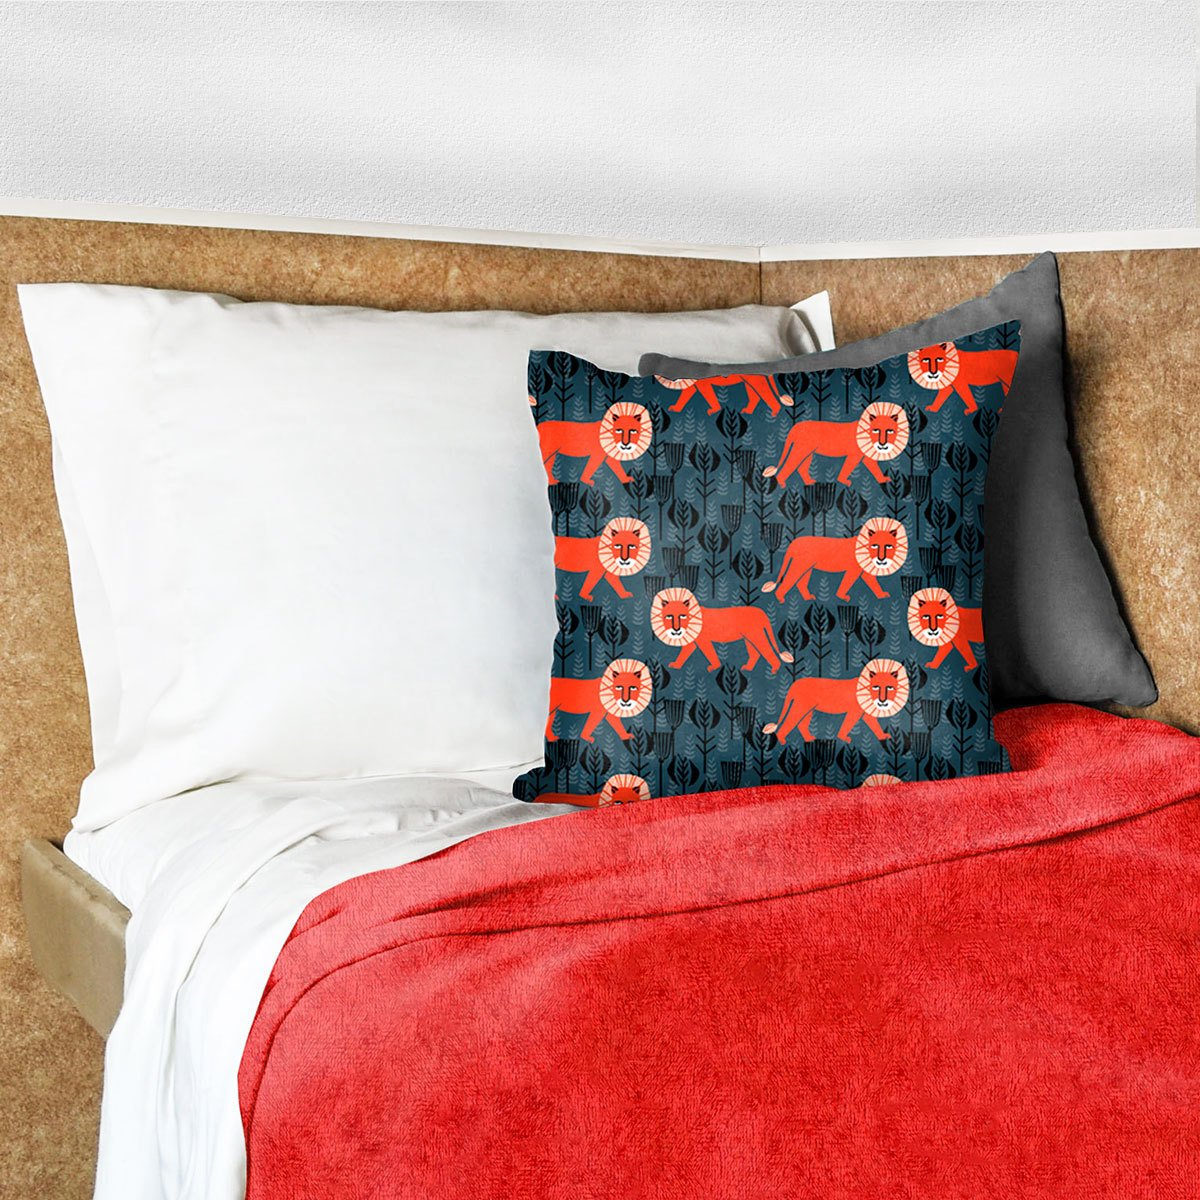 AB Lifestyles Cuddle Minkie Blankets for RVs and Campers 30x75 Red by AB Lifestyles